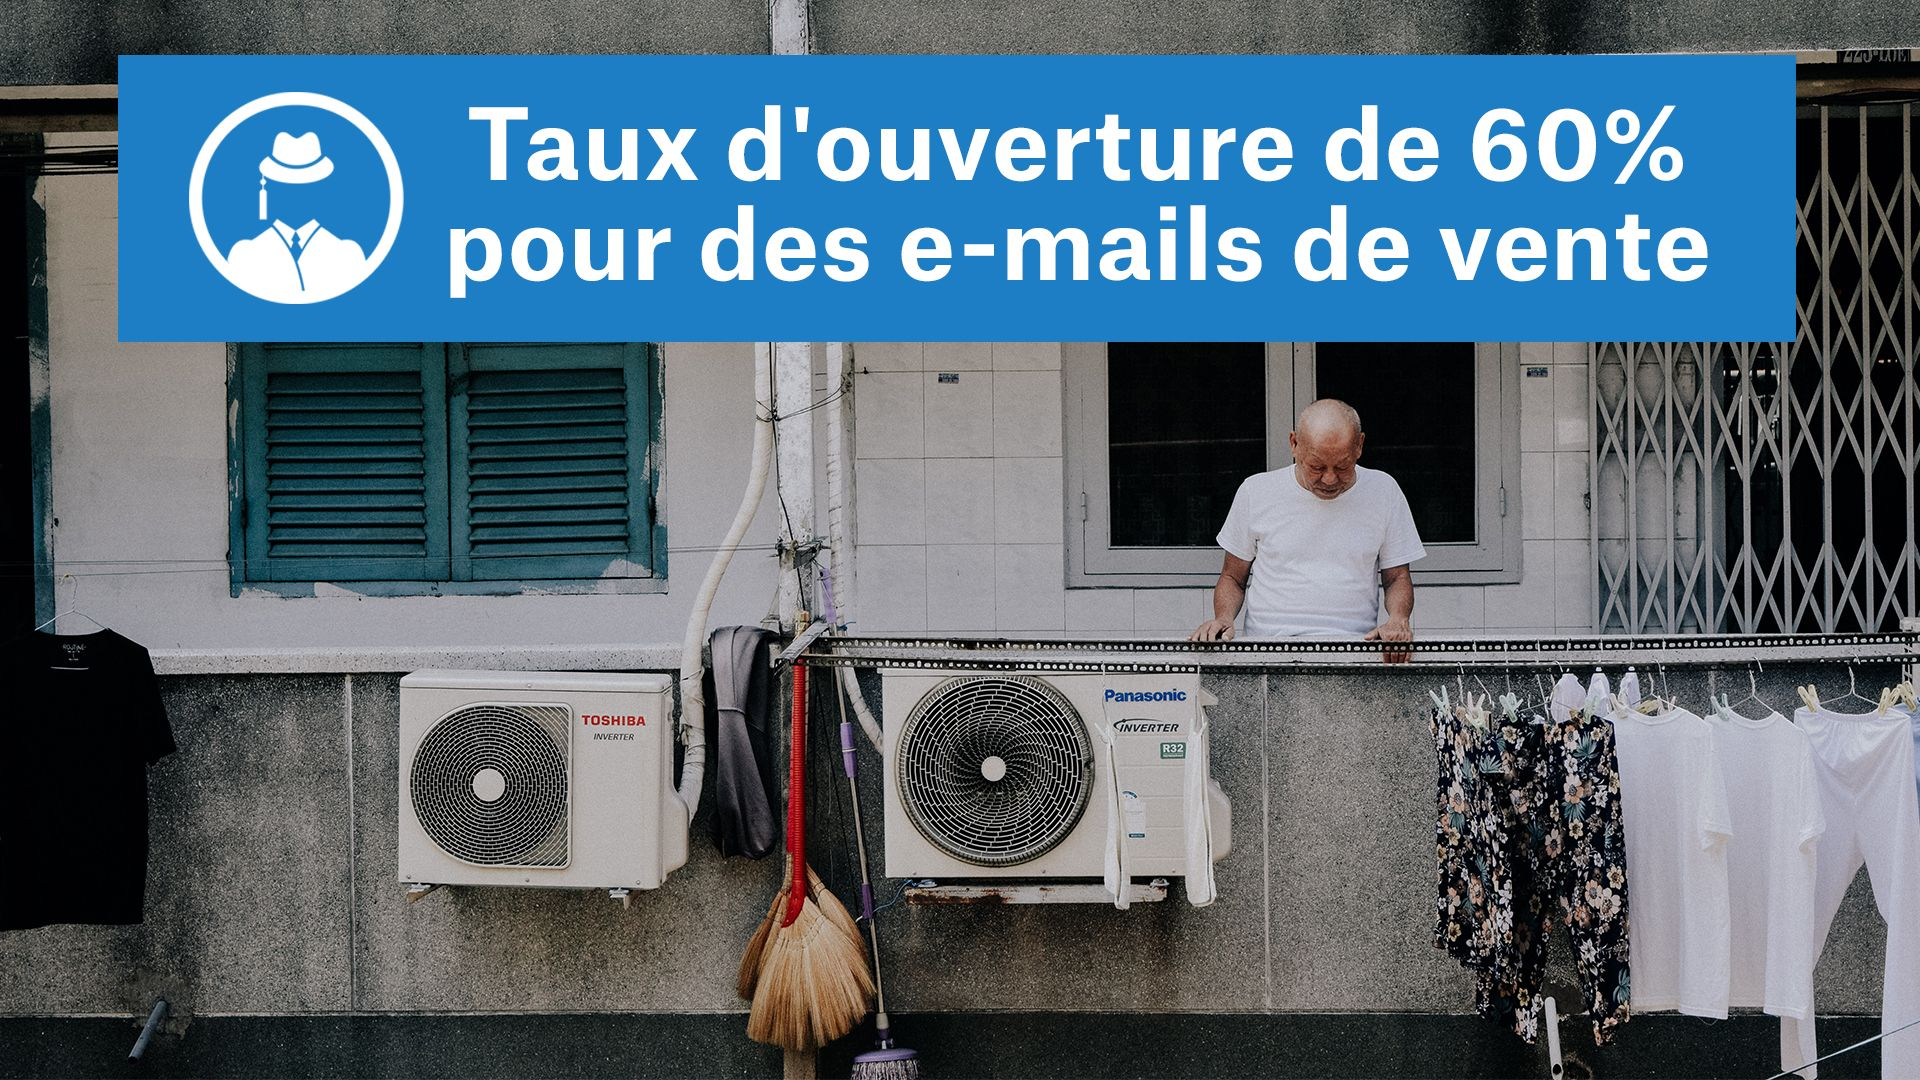 Taux d'ouverture de 60% pour des e-mails de vente #GrowthHacking #WebMarketing #FormationGrowthHacking #CentreDeFormationFrance #TunnelAARRR #AARRR #SocialMedia #CommunityManagement #SEO #MarketingDigital #SiteWeb